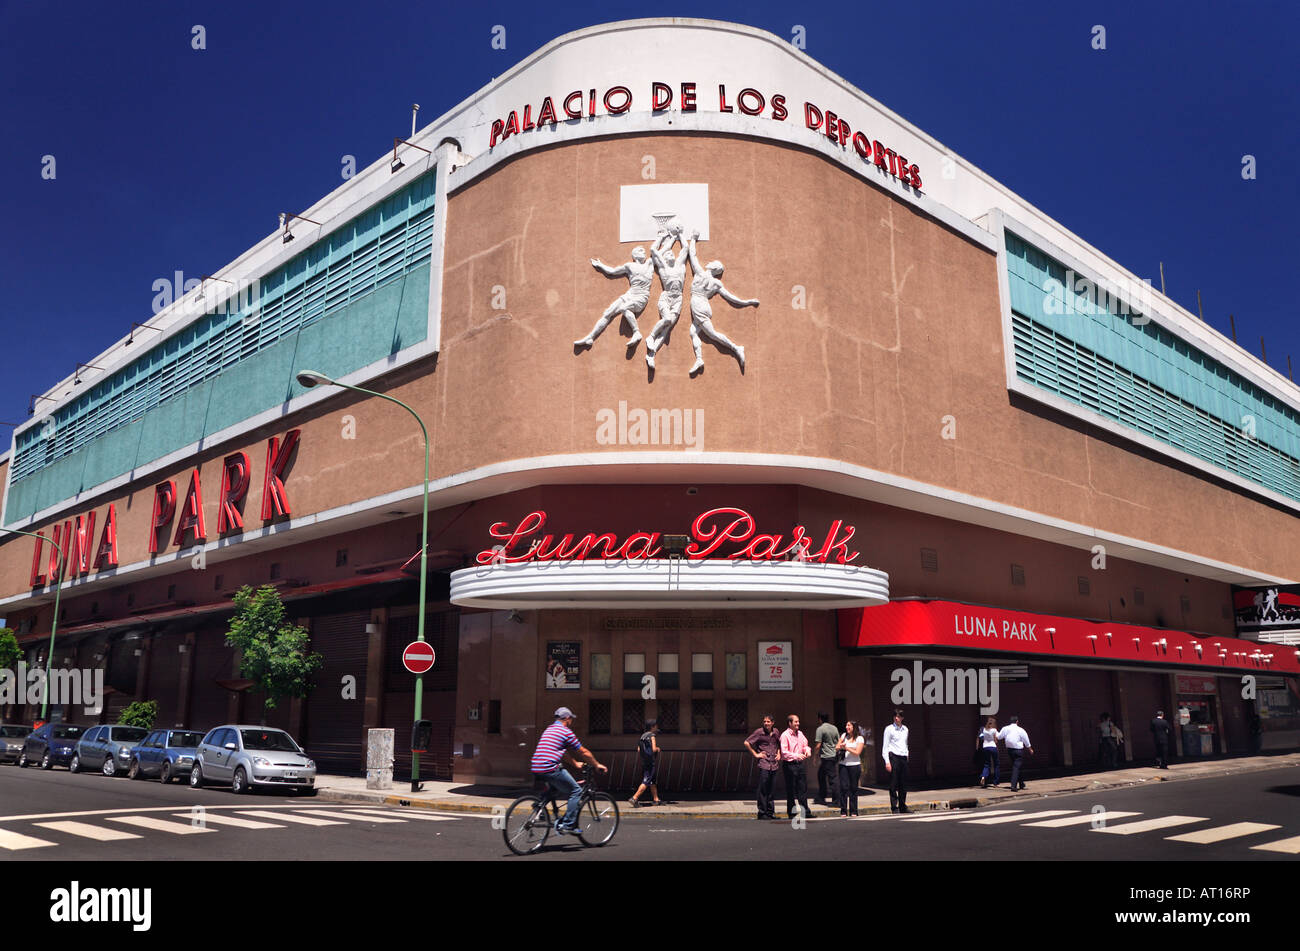 Luna Park Stadium Facade Corner, with people walking and a bicycle passing. Downtown, Buenos Aires, Argentina - Stock Image